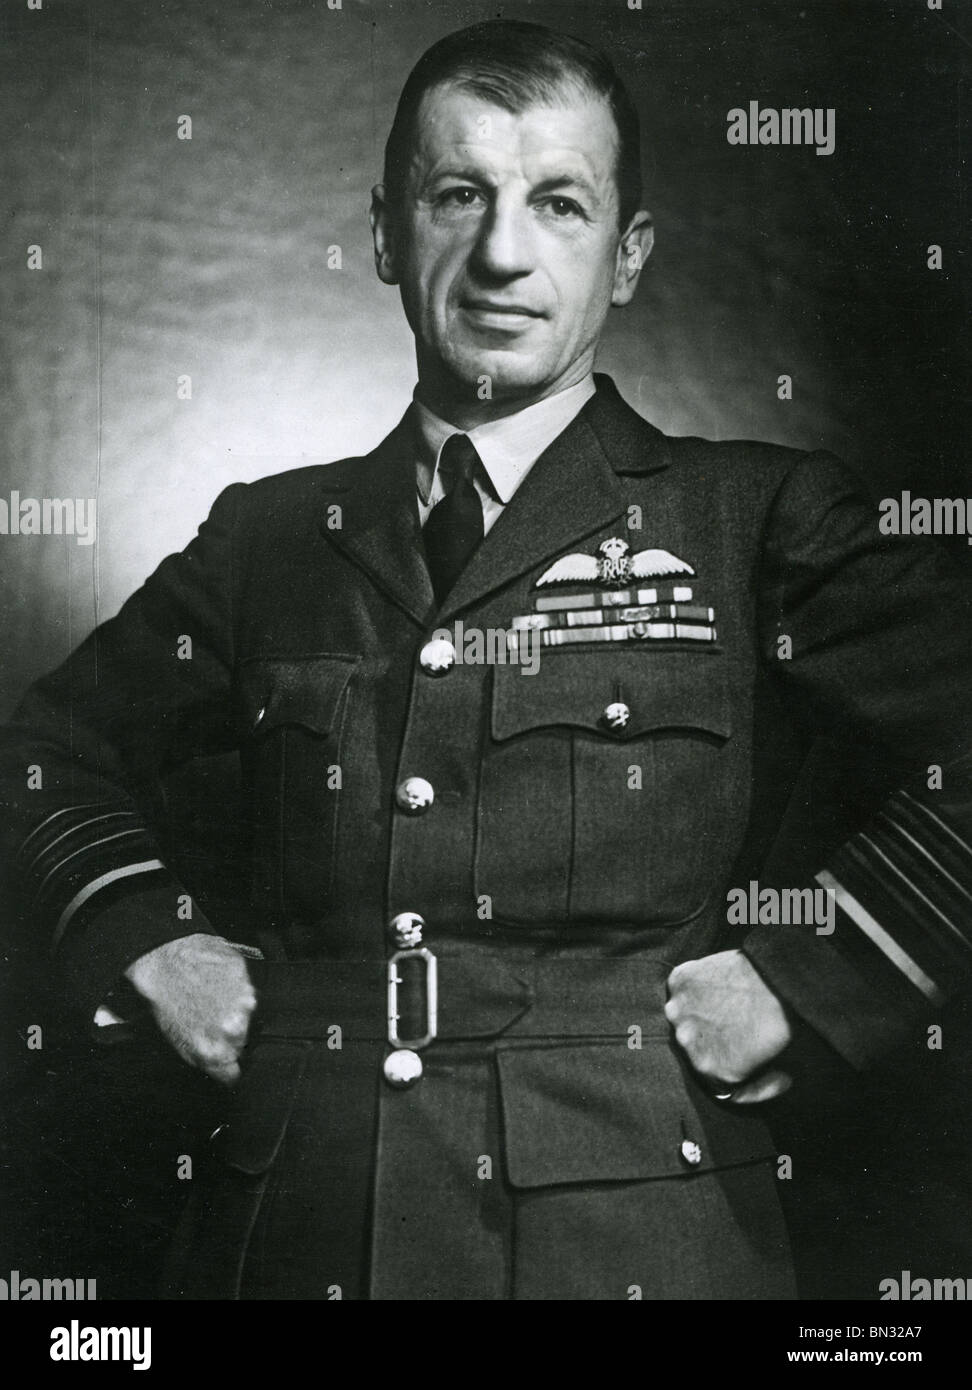 CHARLES PORTAL (1893-1971) - Marshal of the RAF and British Chief of Air Staff during most of WW2 - Stock Image